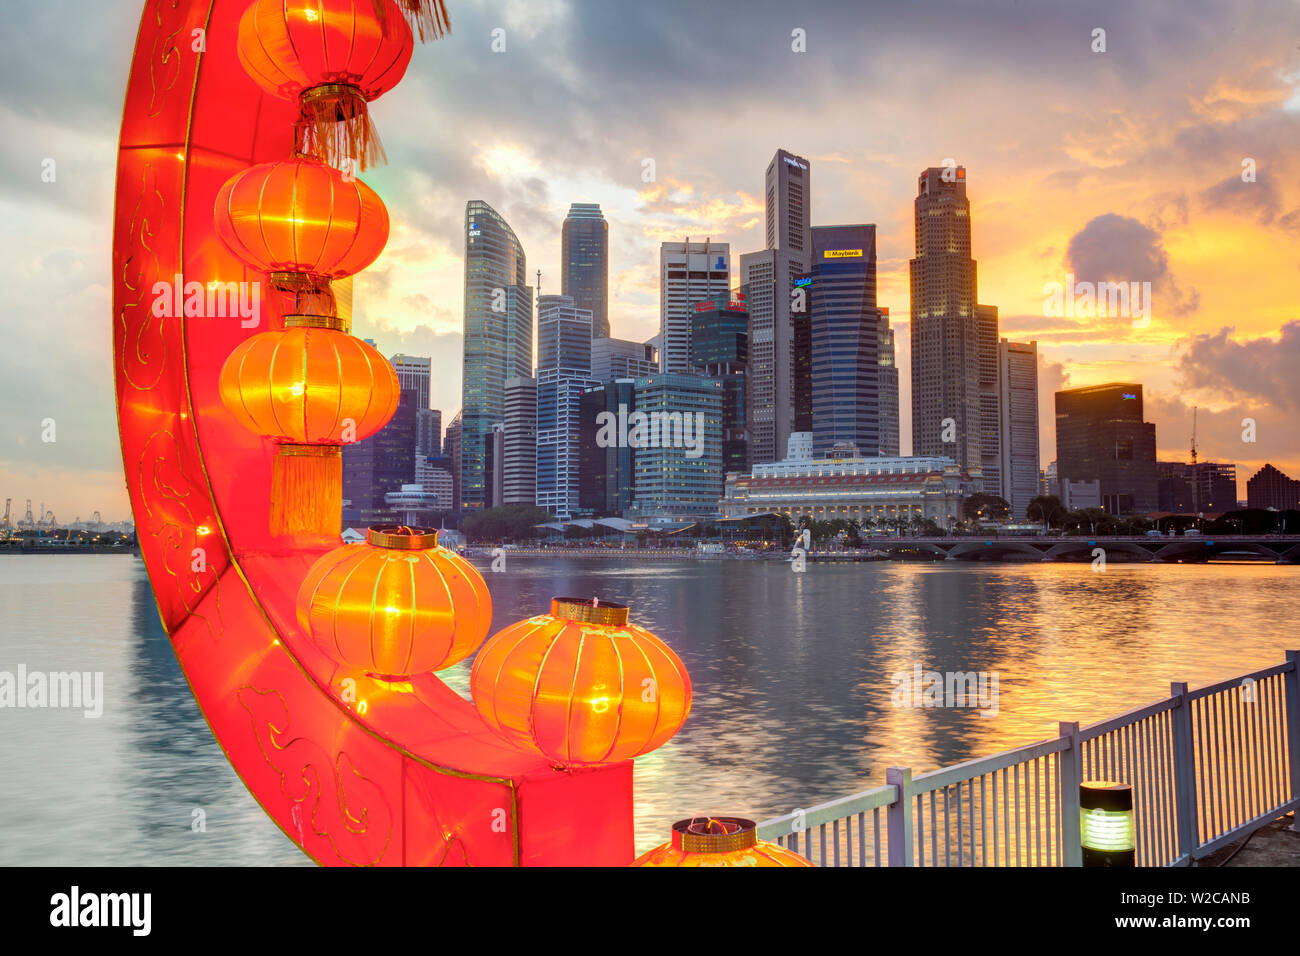 City Financial Skyline, River Hongbao decorations for Chinese New Year celebrations at Marina Bay, Singapore, South East Asia Stock Photo